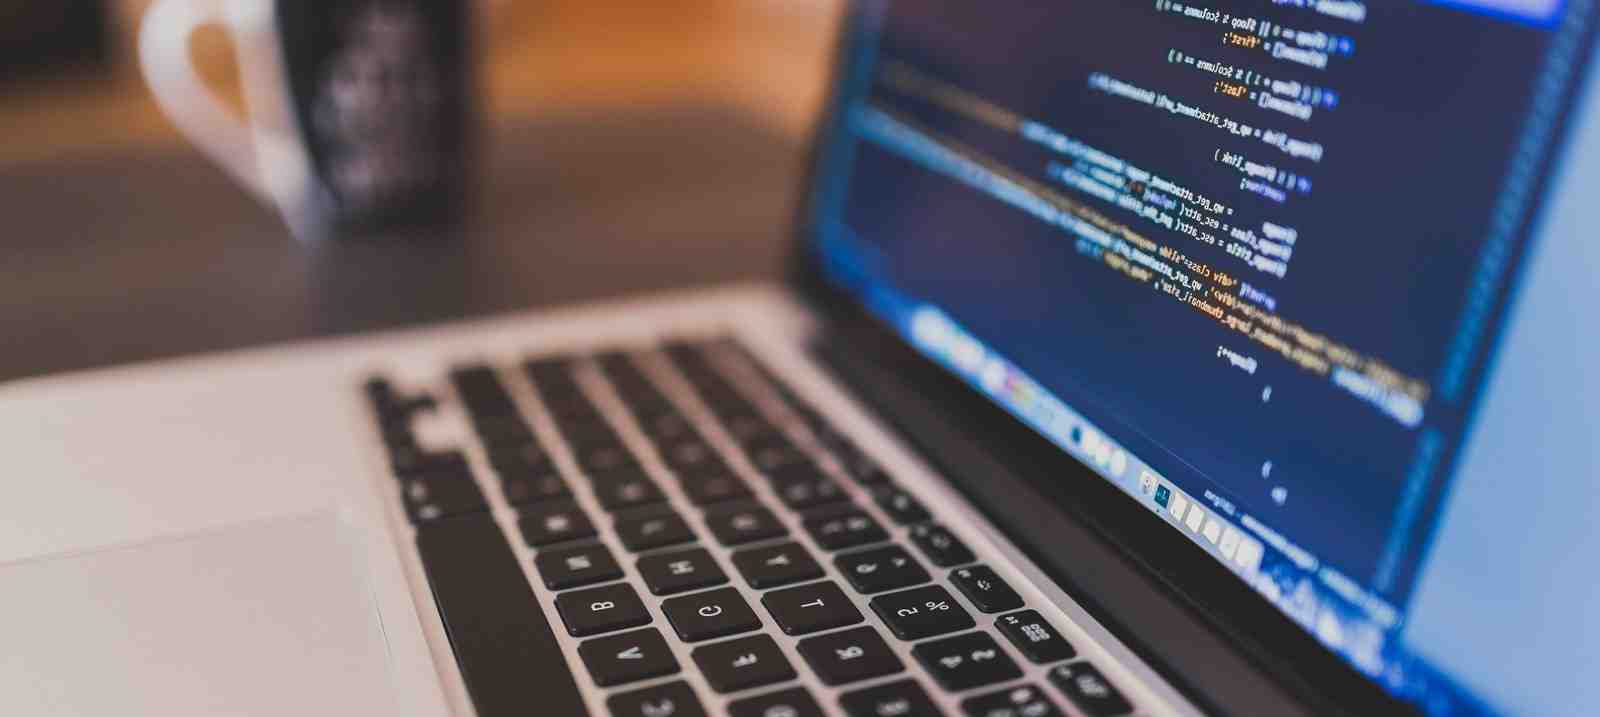 What is difference between programmers and developer?